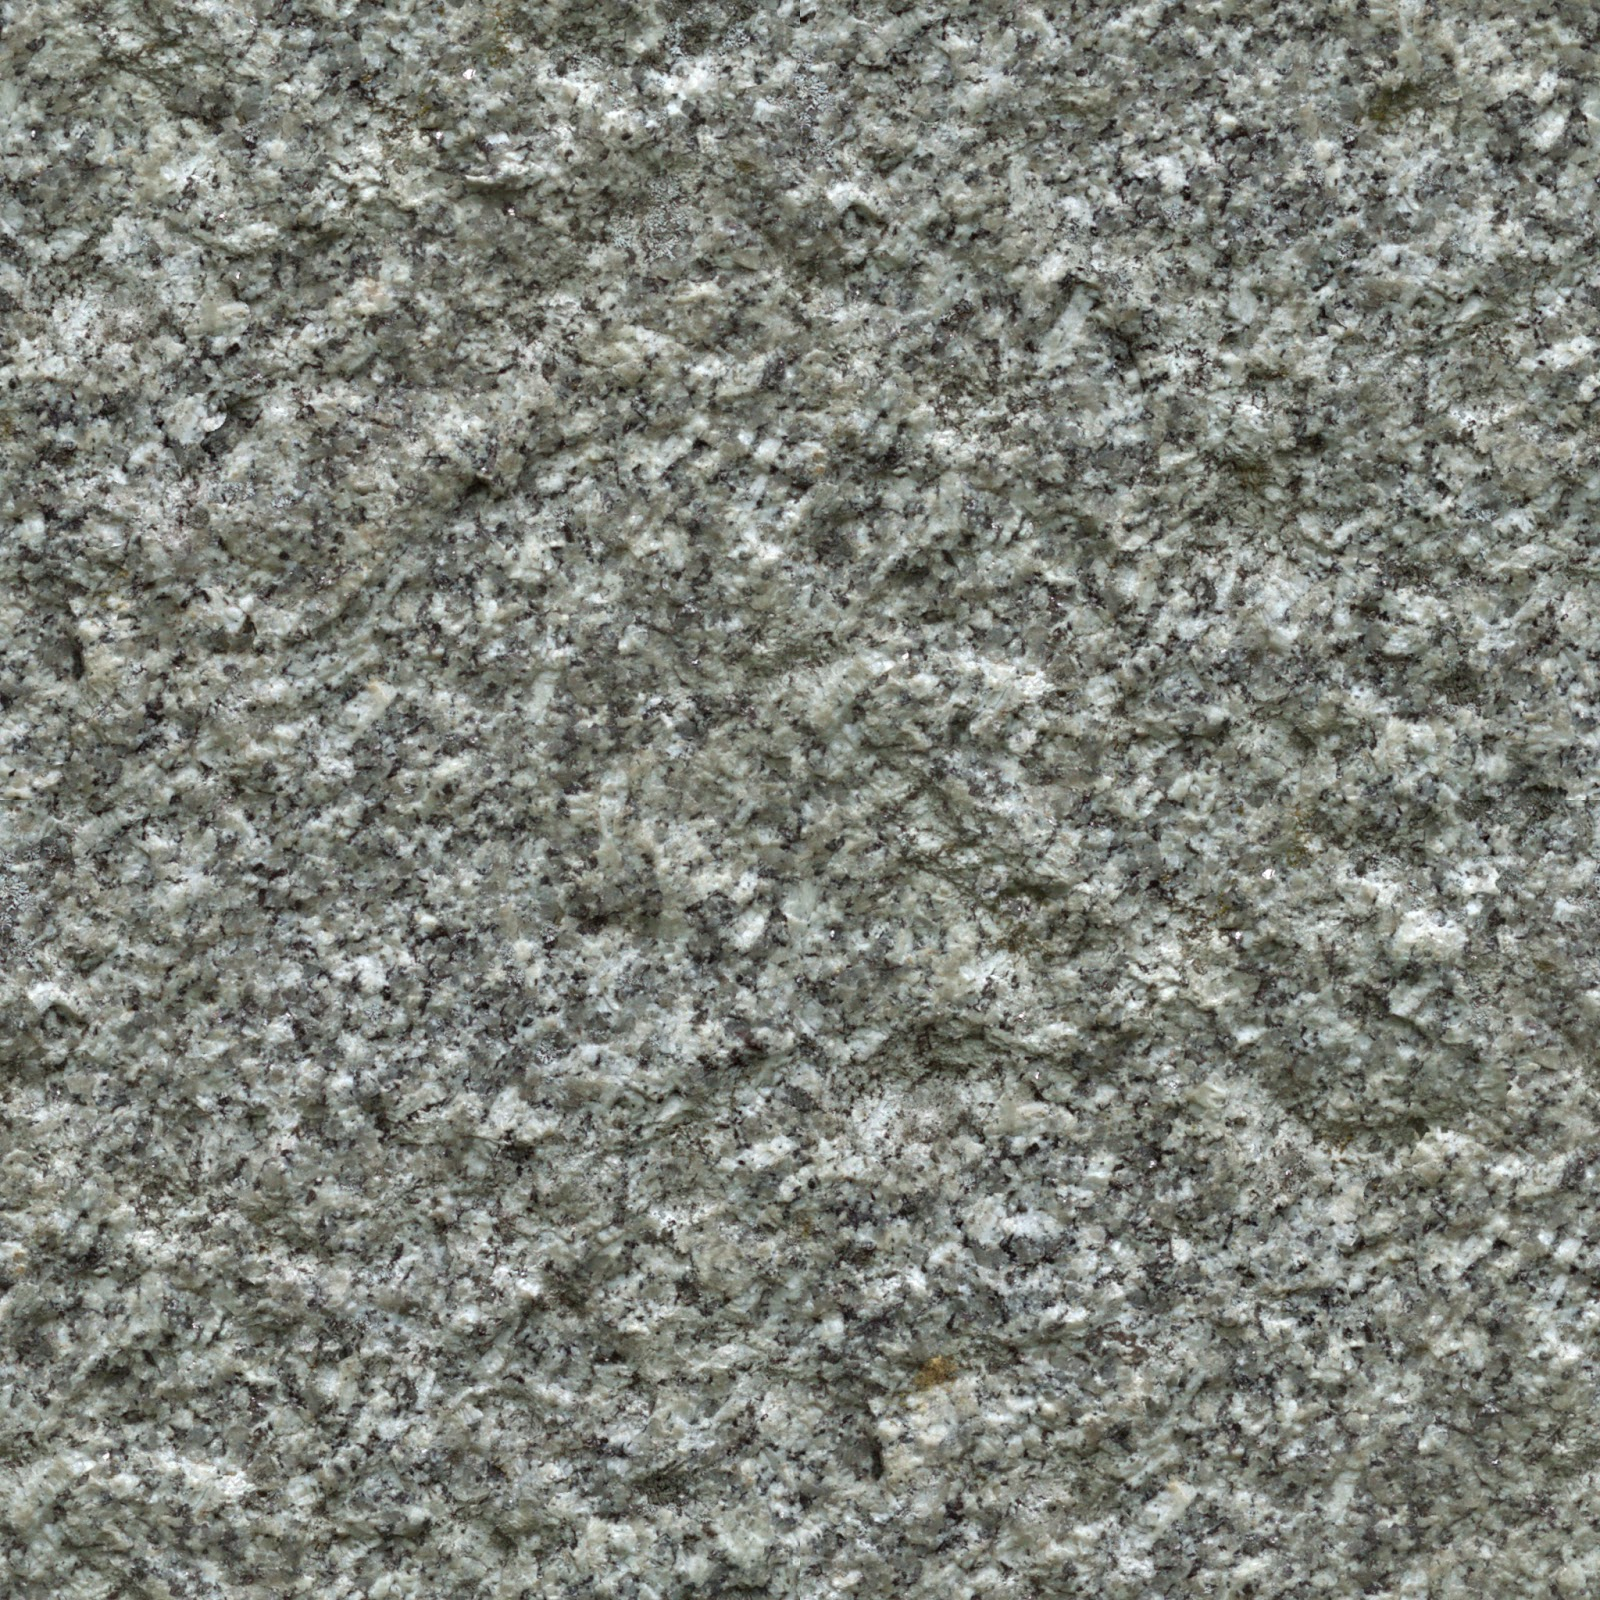 (Stone 10) marble black white up close seamless texture 2048x2048